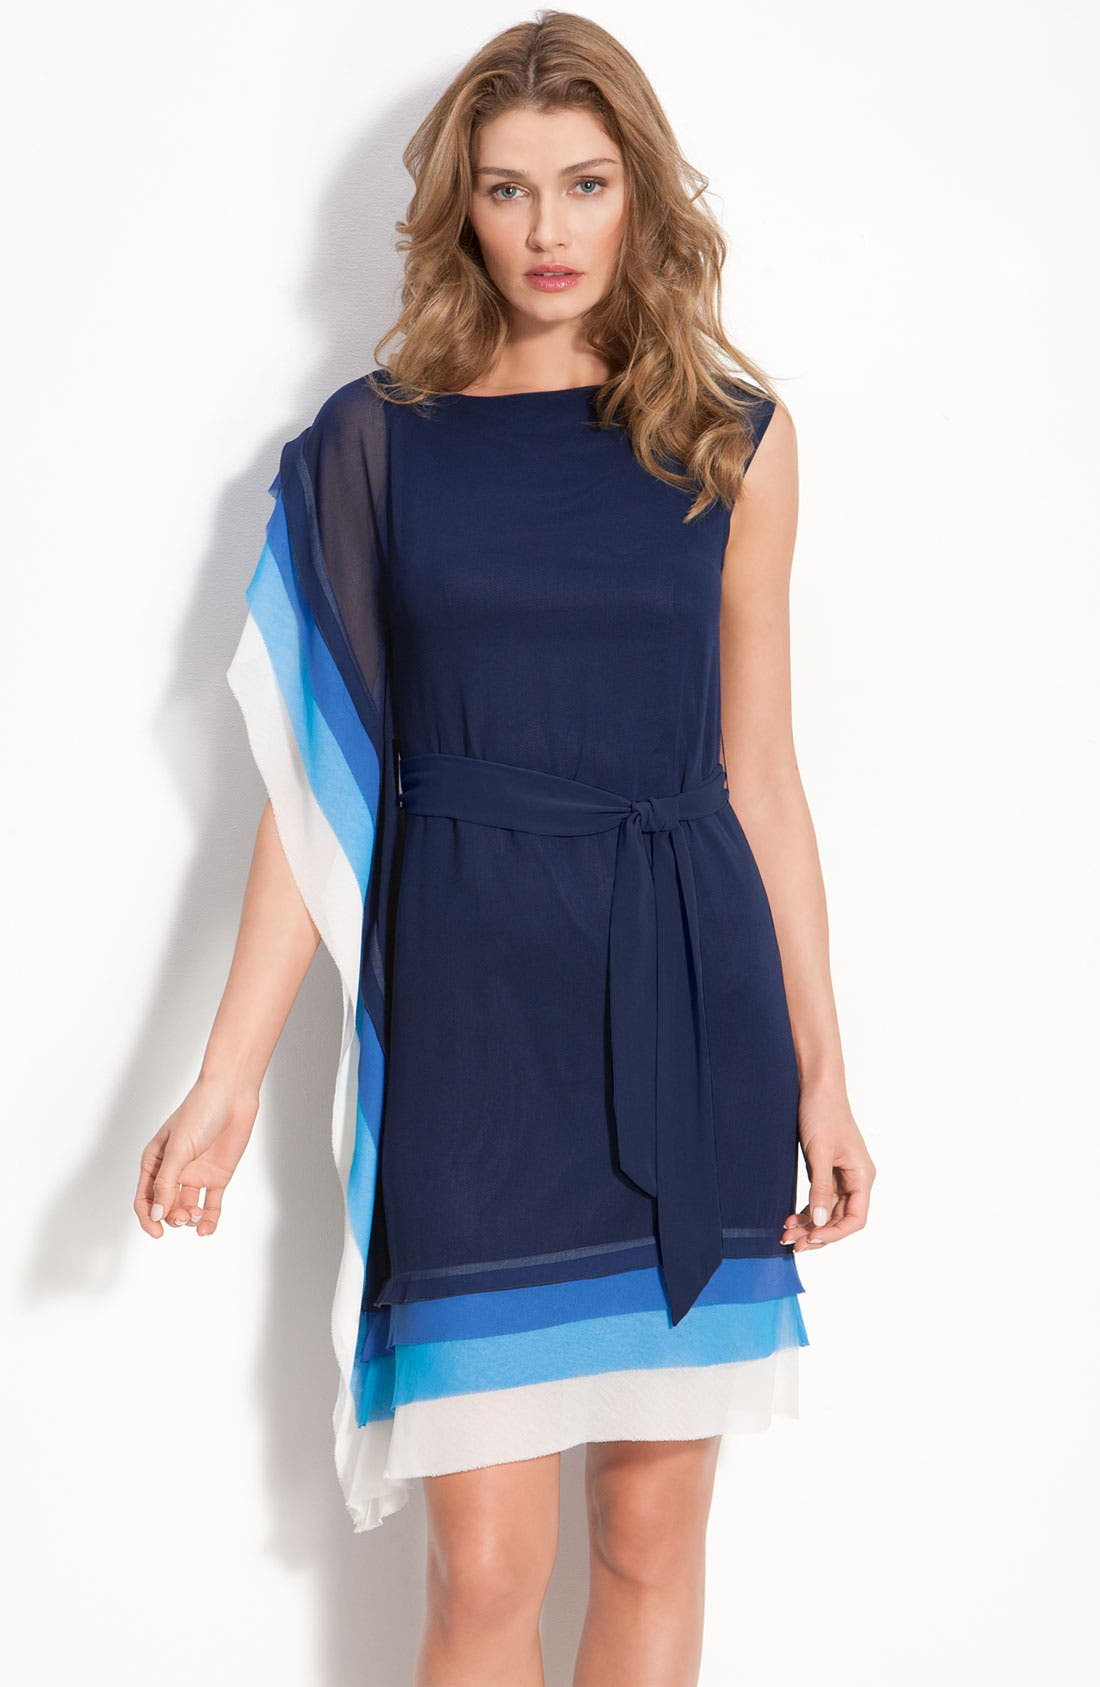 Main Image - Vince Camuto Asymmetric Layered Tier Dress with Sash Tie